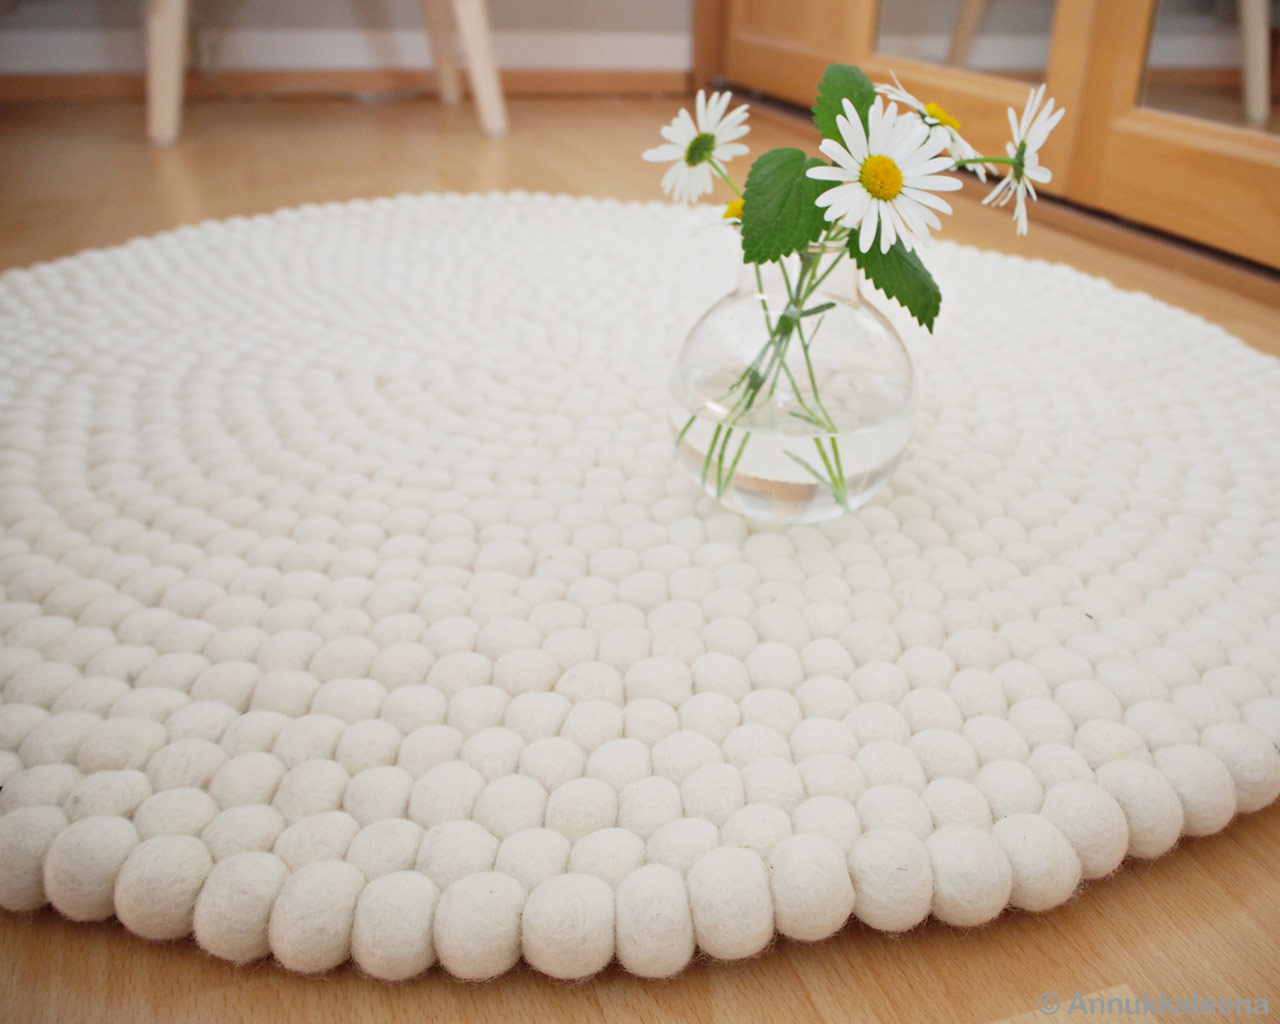 transparent glass vase with flowers nepal contemporary rugs